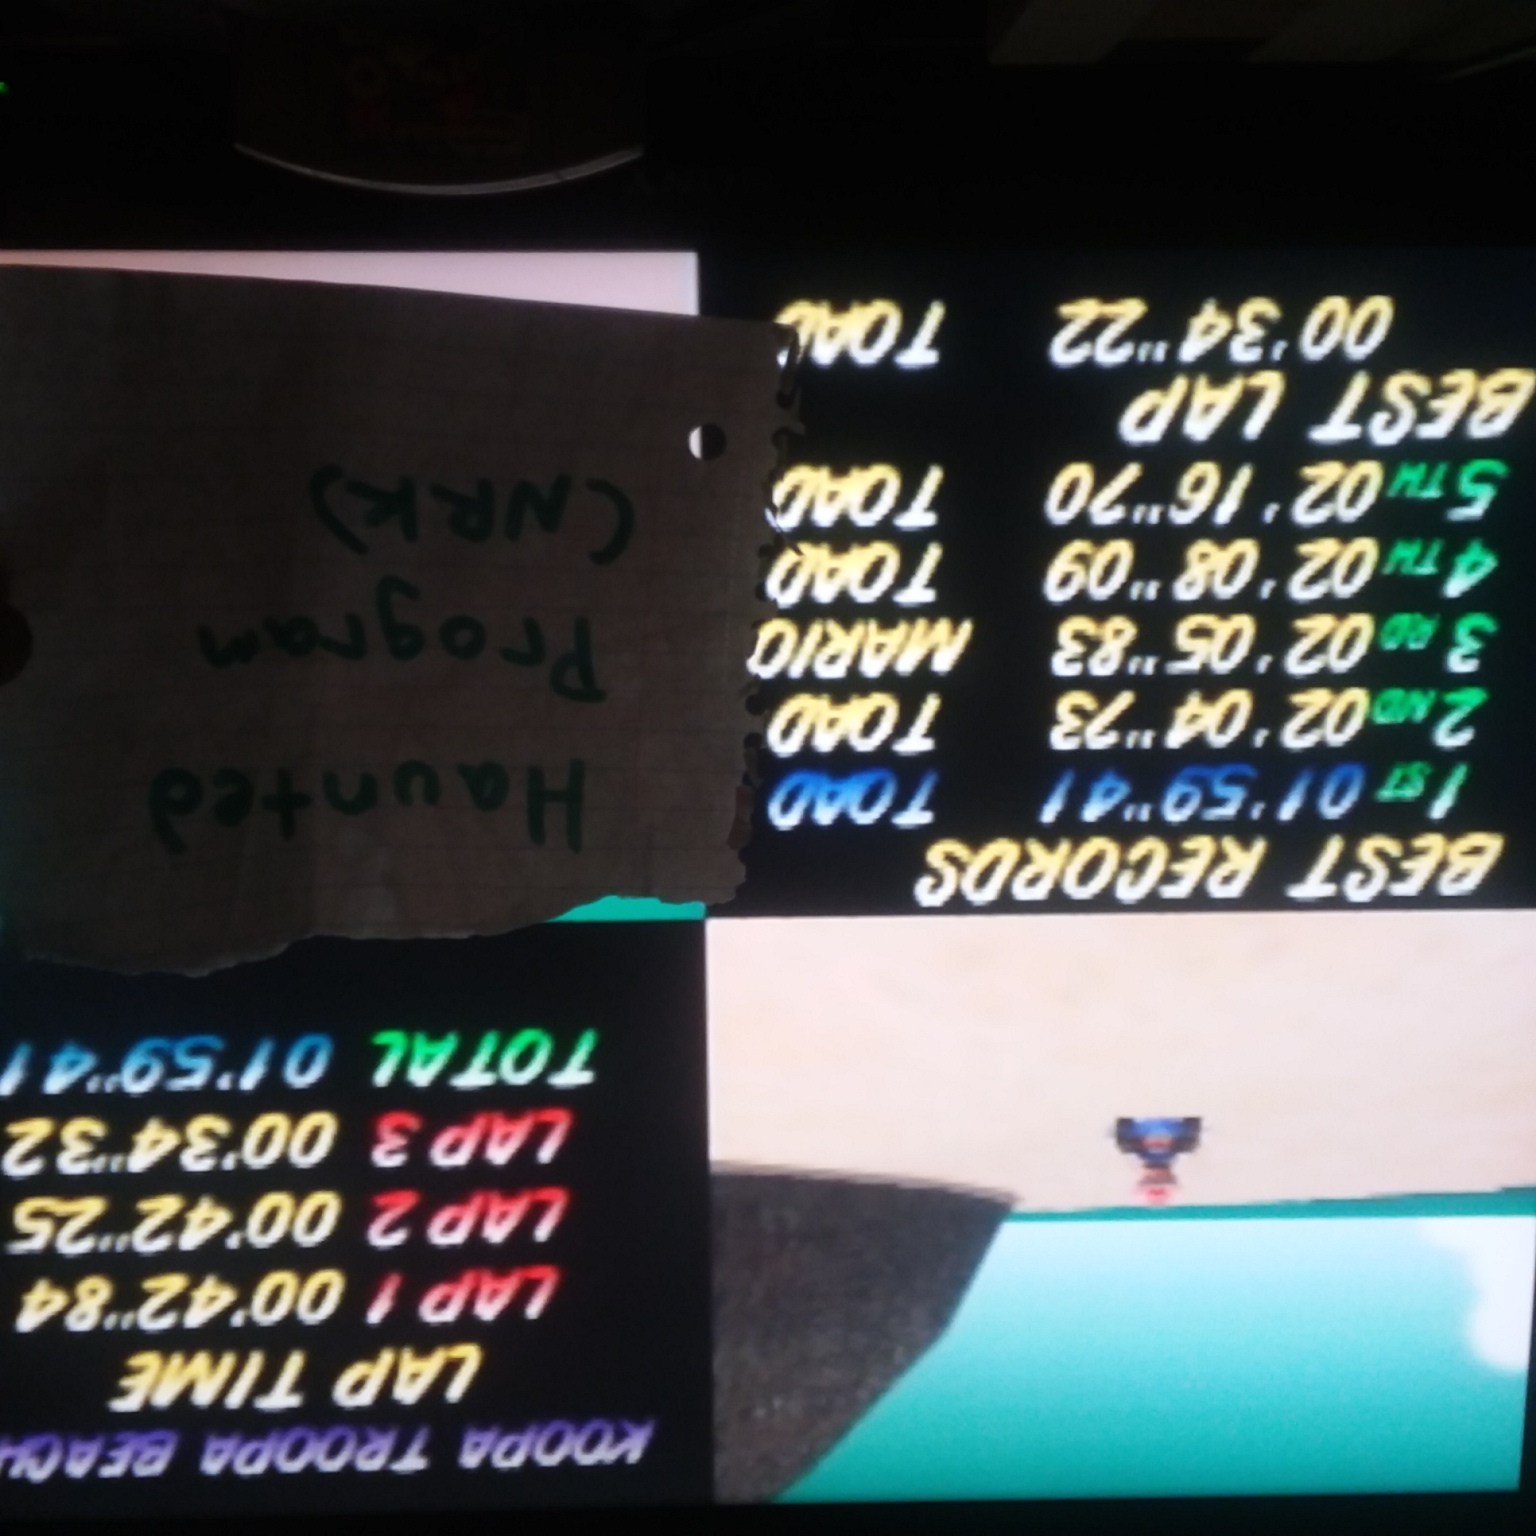 Mario Kart 64: Koopa Troopa Beach [Time Trial] [Lap Time] time of 0:00:34.32